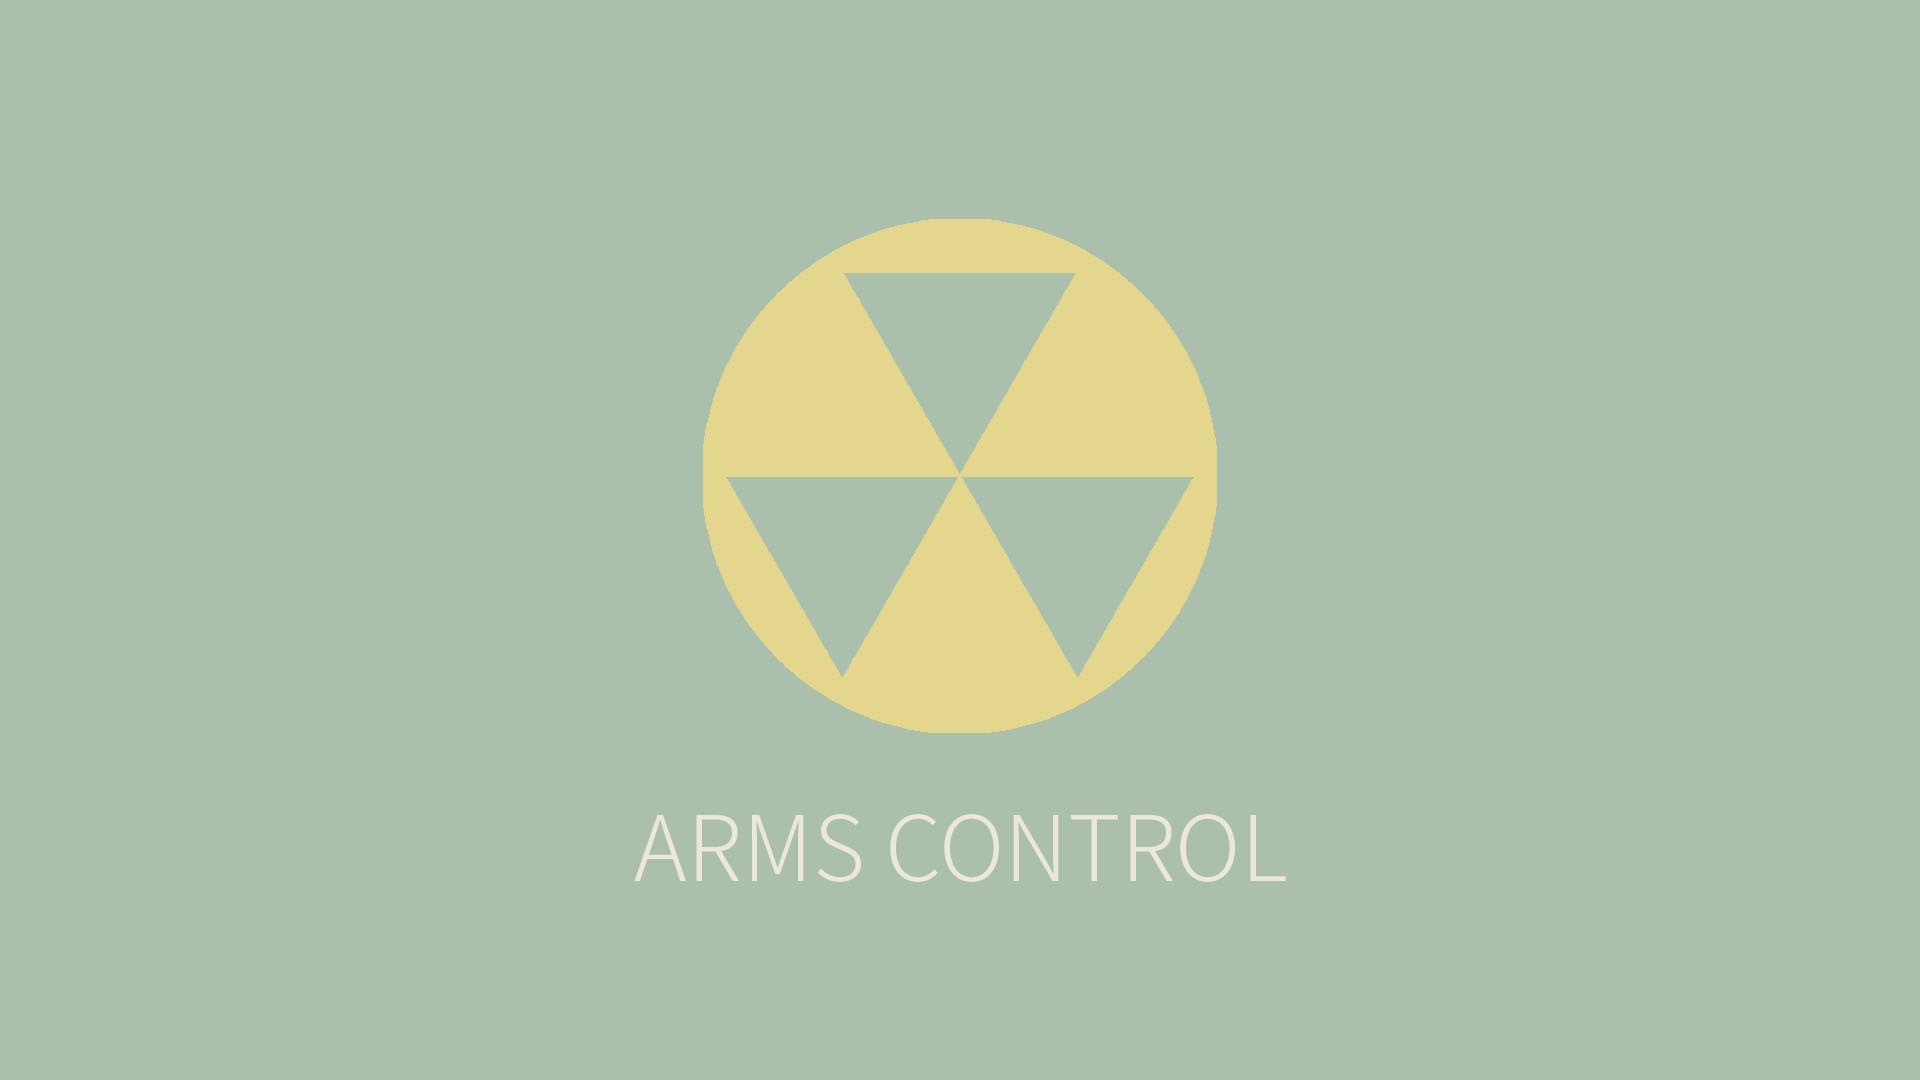 Nuclear Powers Must Lead on Arms Control